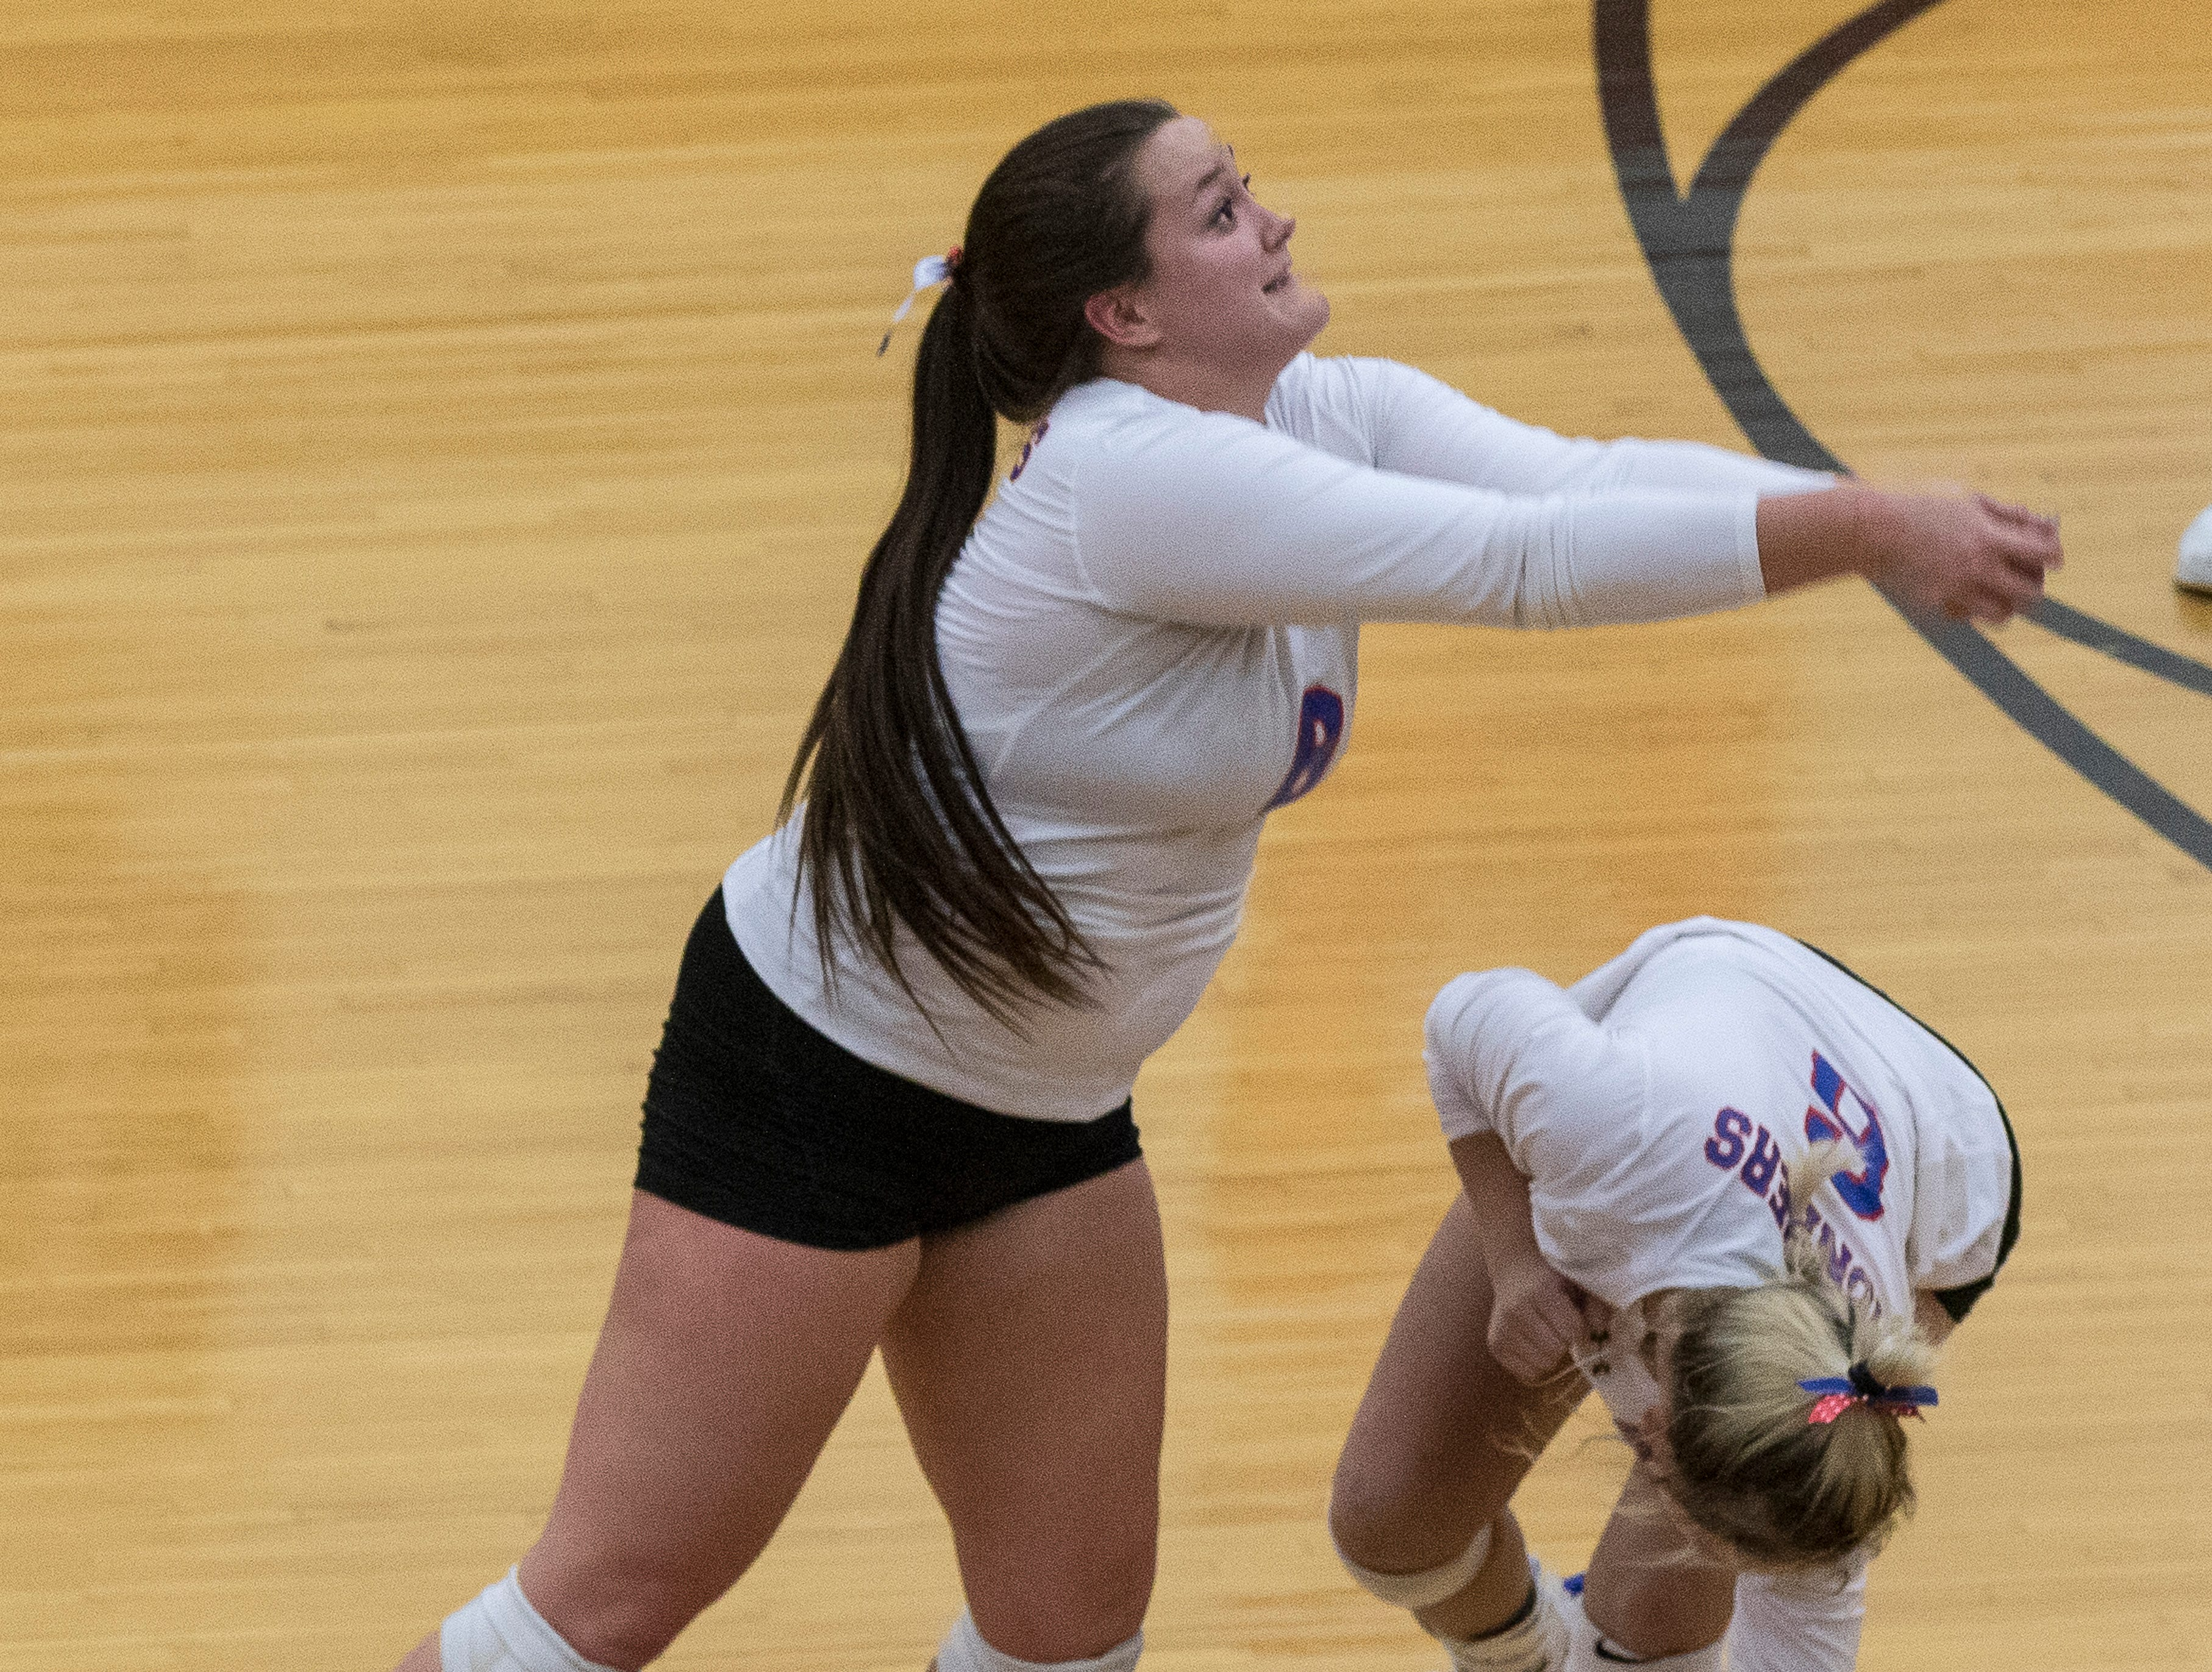 Zane Trace's Alli Bennett ducks as Hannah Unger quickly moves to return a volley sent by North Adams Wednesday night during a Division III district semifinals match. Zane Trace defeated North Adams 3-0, advancing them to district finals against Southeastern.